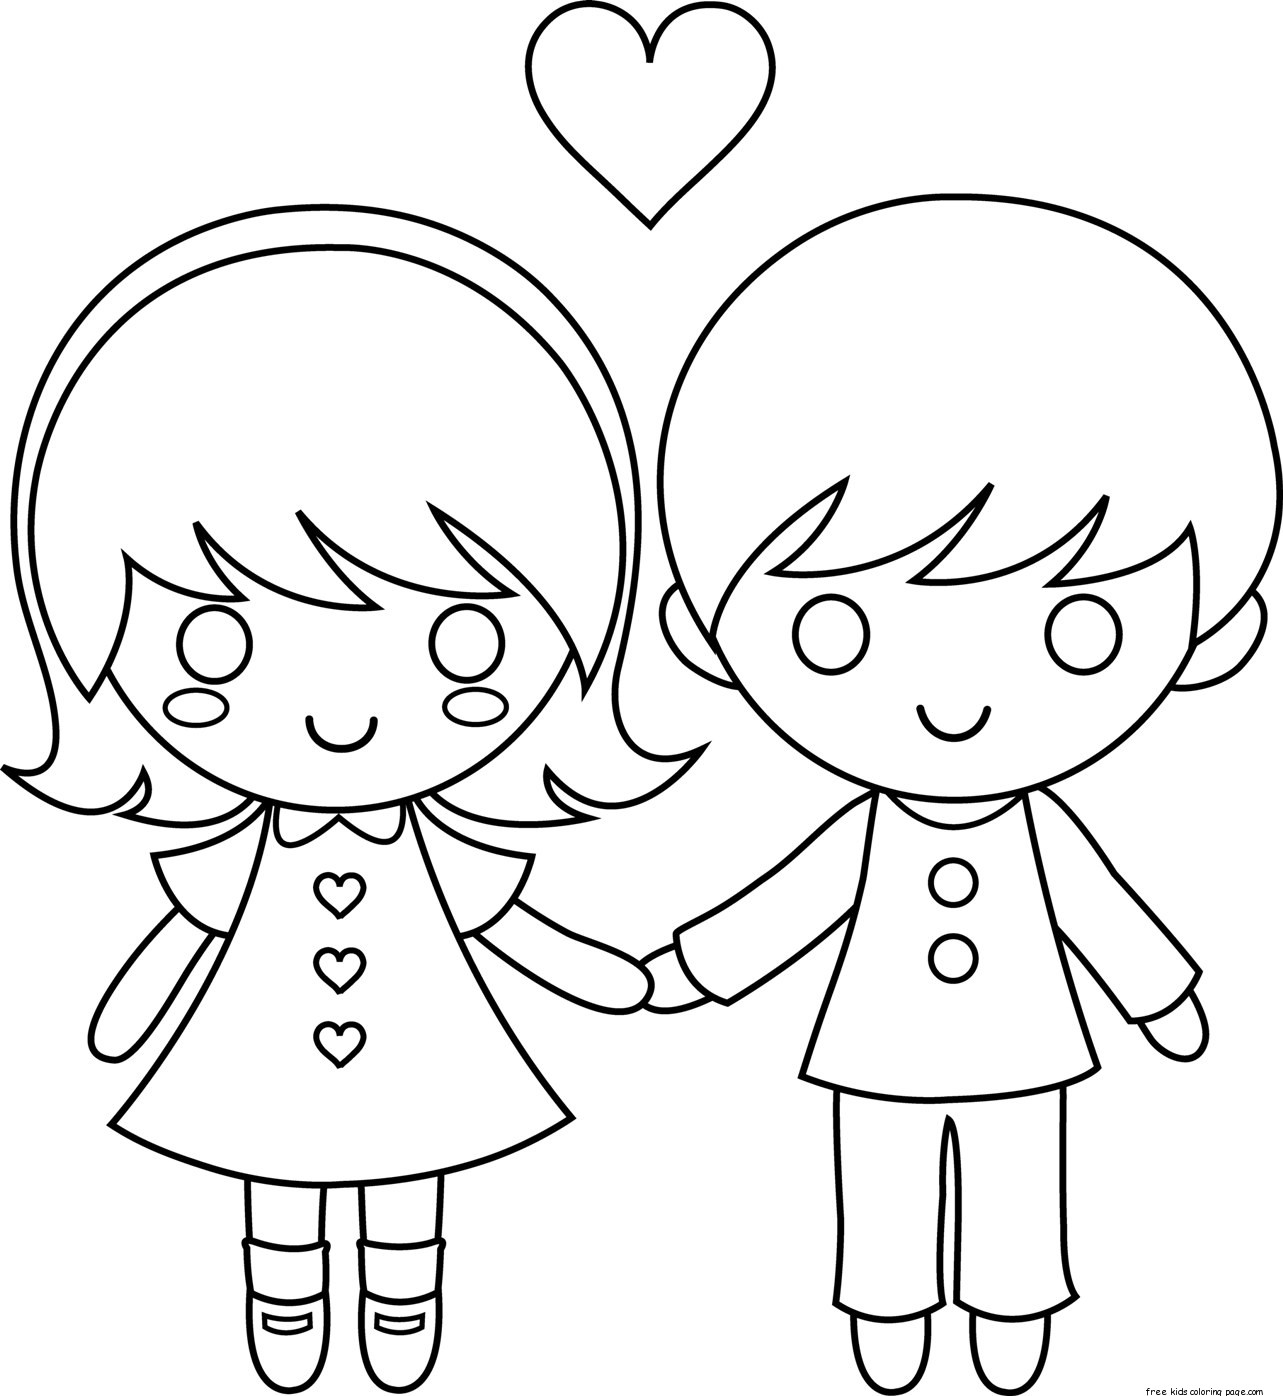 girlfriend and boyfriend coloring pages - photo#9